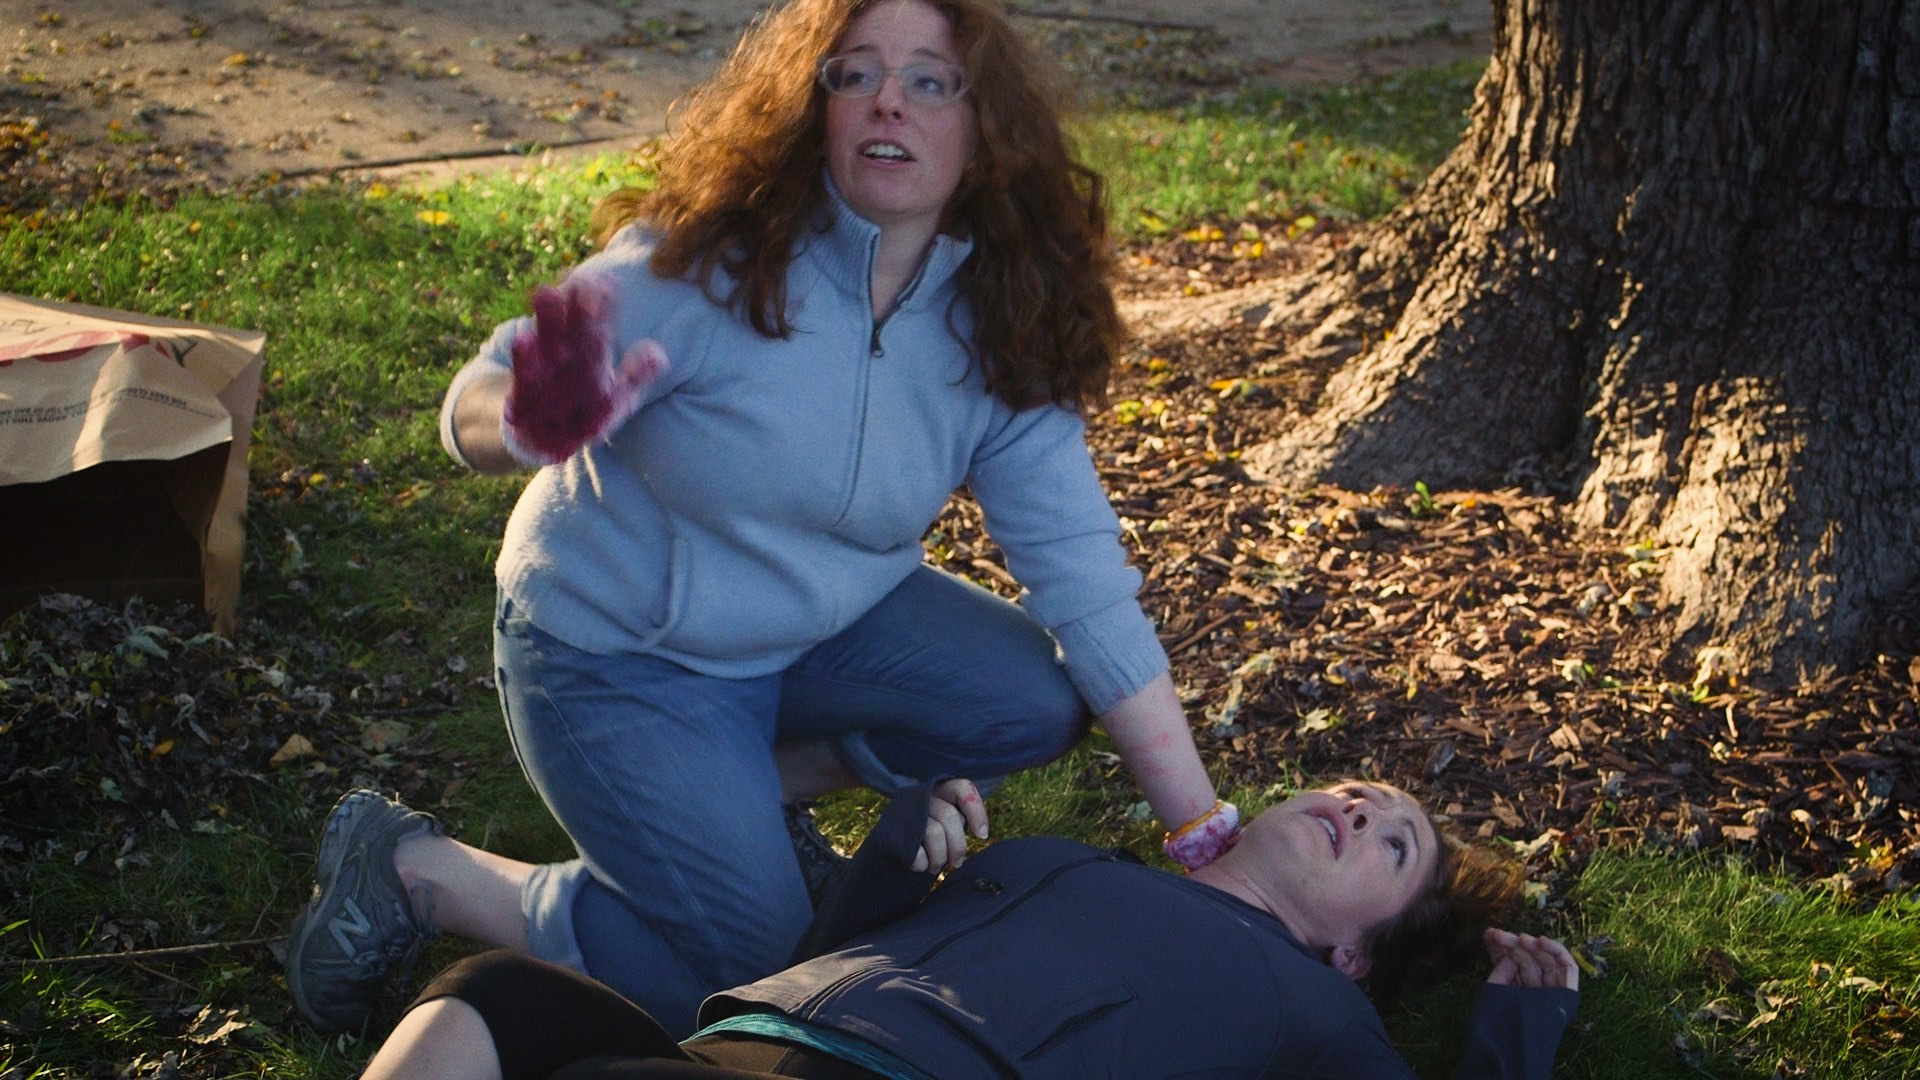 Kyrie Anderson and Carolyn Minor in Limbs (2019)